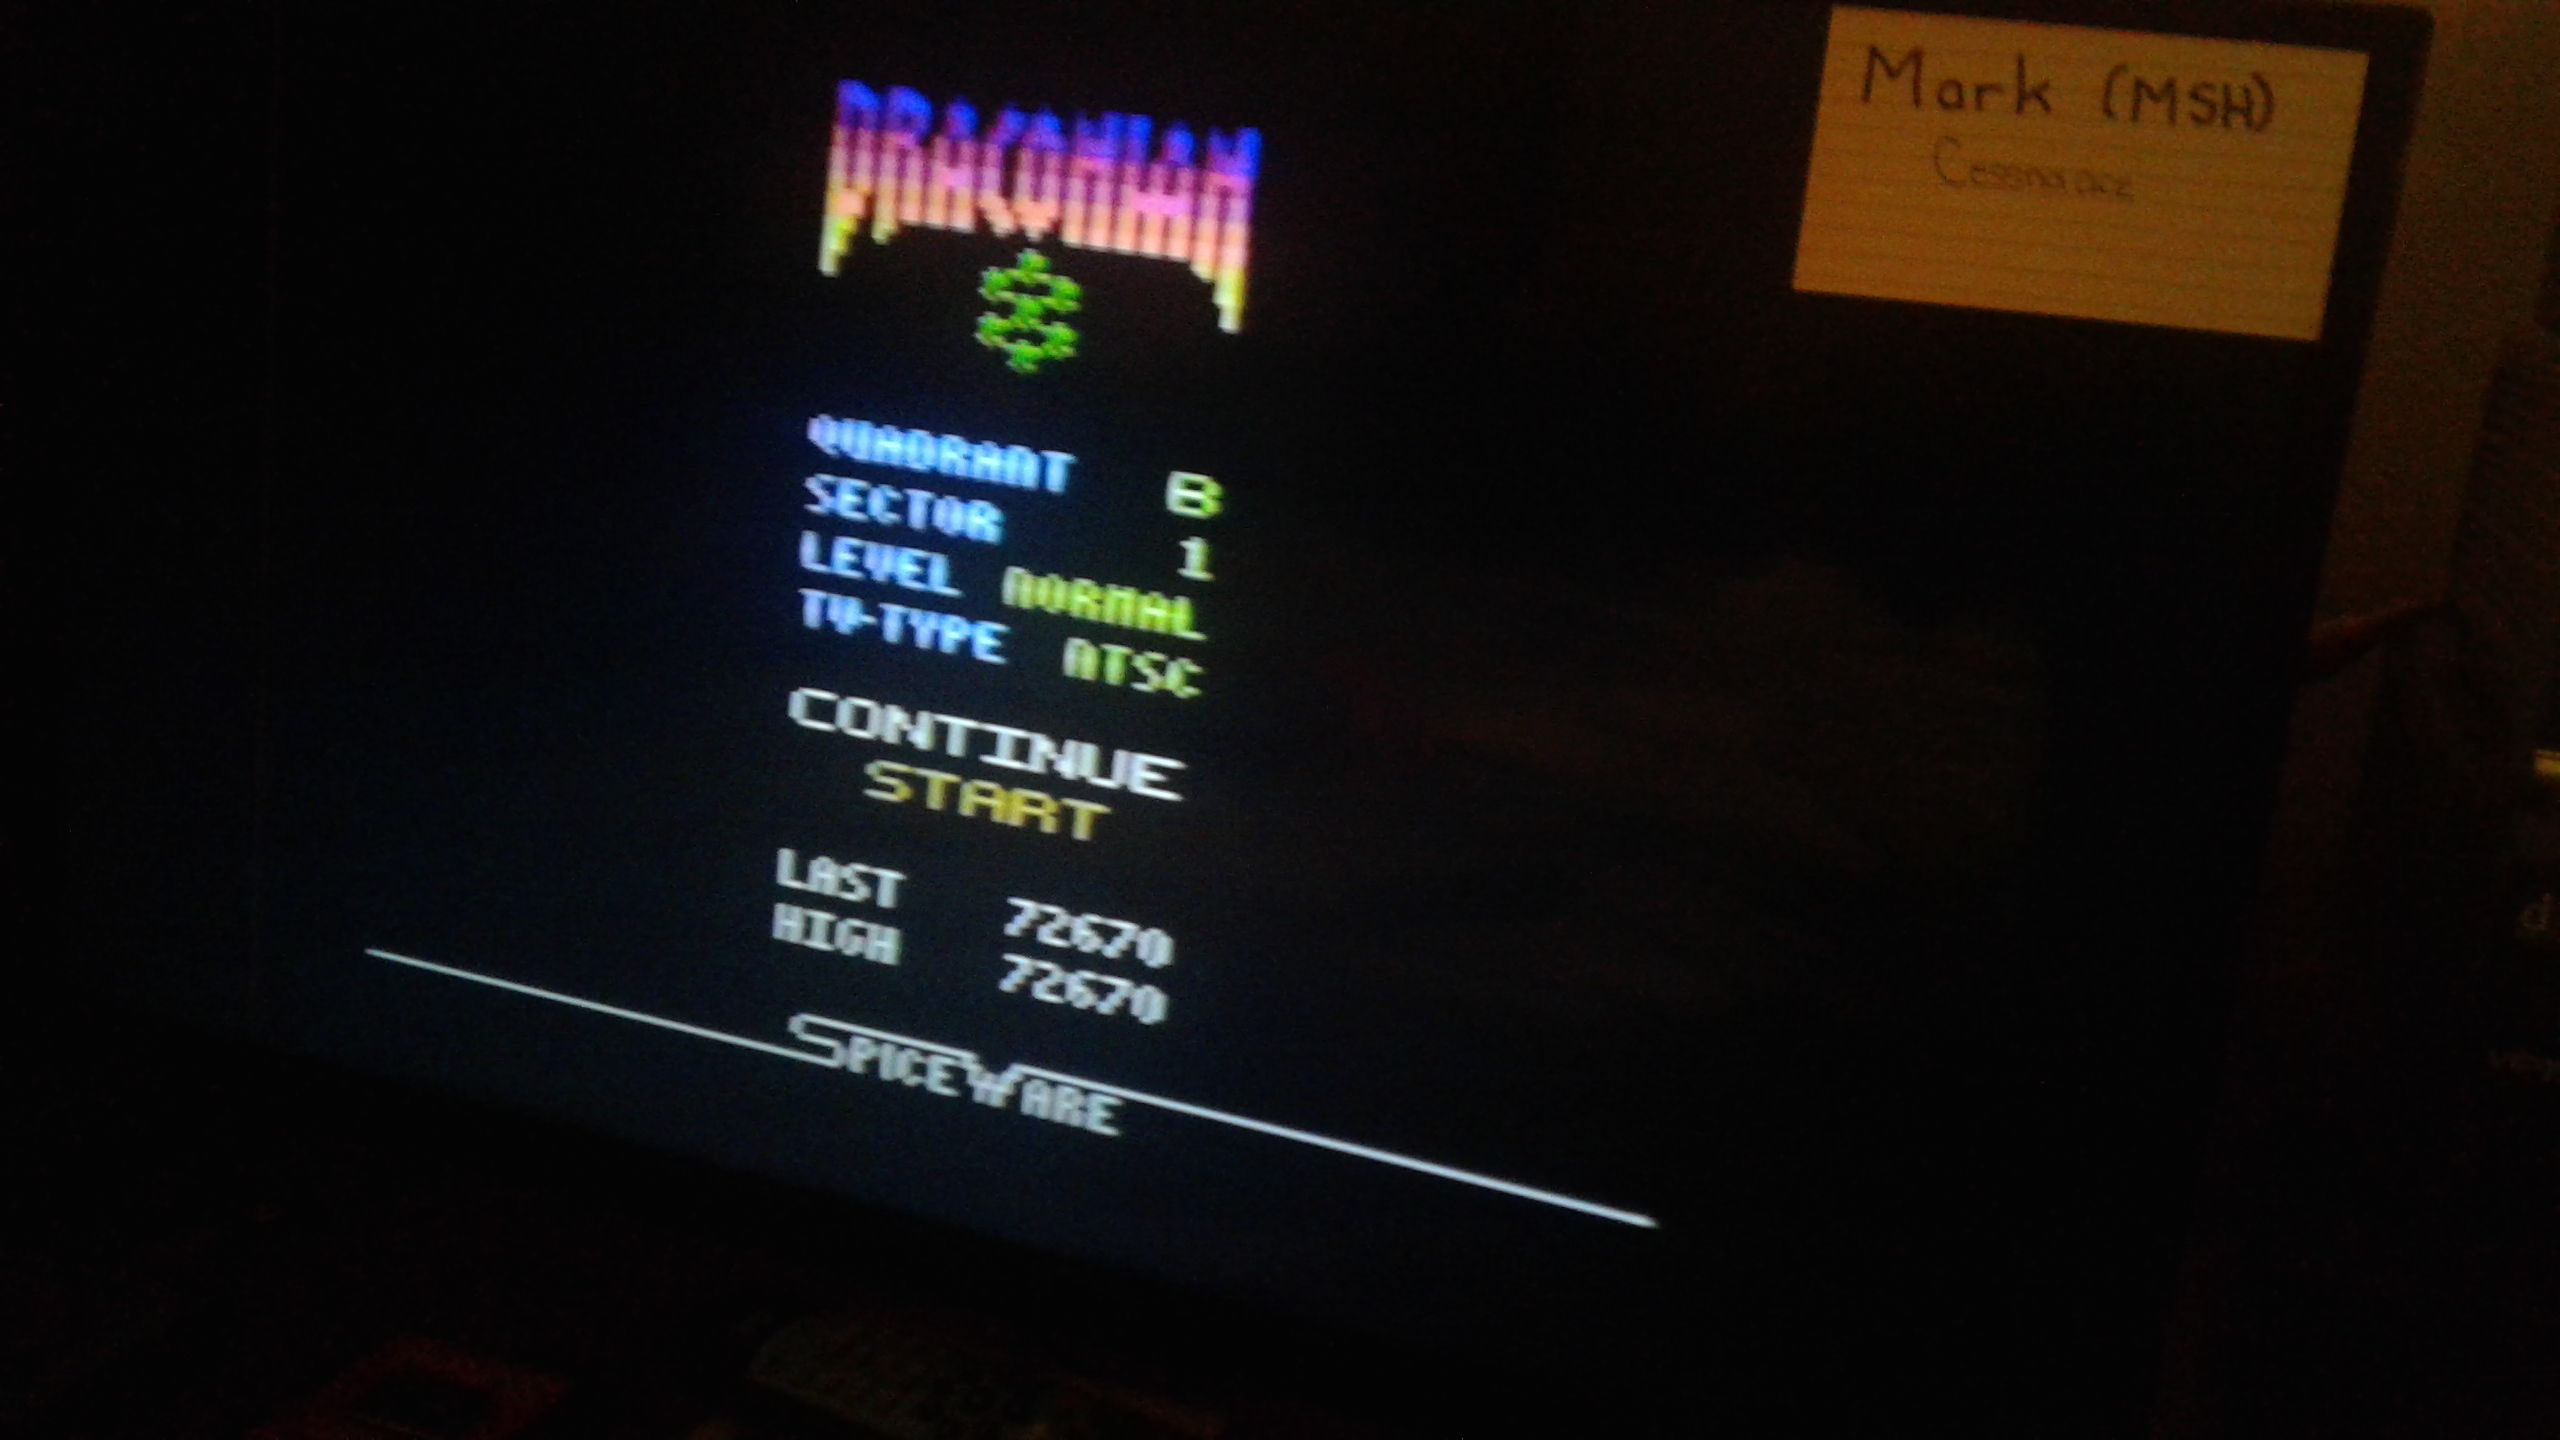 Mark: Draconian: Quadrant Beta / Sector 1 [Normal] (Atari 2600) 72,670 points on 2019-05-10 00:04:51